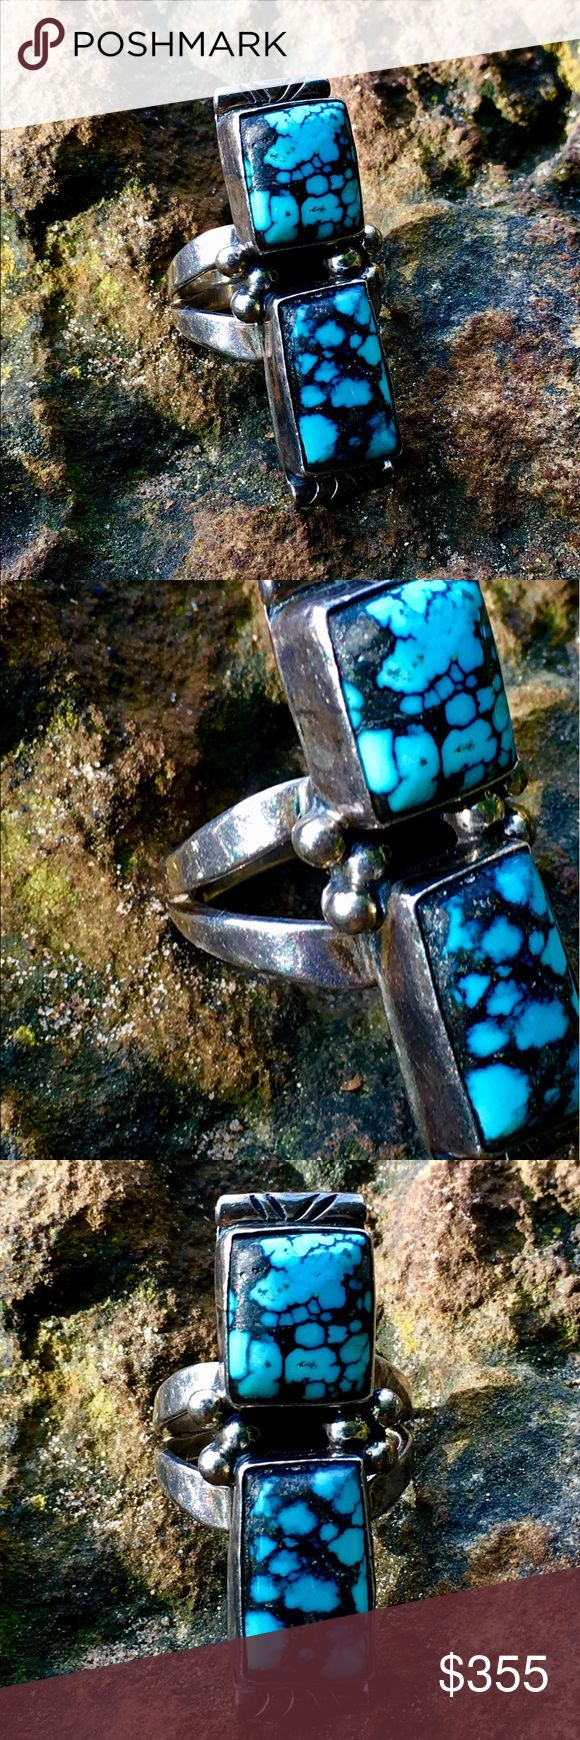 """Navajo Silver Cloud Mnt. Spider Web Turquoise Ring Drop Dead Gorgeous, VINTAGE, era 1980's, Sterling Navajo Ring, by Navajo Wilson Padilla, fashioned of Exotic Gem Grade Cloud Mountain Spiderweb Turquoise, 2- Rectangular Cabochons, 7/16"""" x 3/8"""" and the larger is approx. 5/8"""" x 5/16"""", Set in Full Bezels, Color of stones is a deep sky blue w/dark Charcoal Black, reminiscent of Old Lander Blue Turquoise., Split Shank Ring, Face of Ring is 7/16"""" x 1 1/2"""", w/3 hand poured """"Silver Rain Drops"""" on…"""